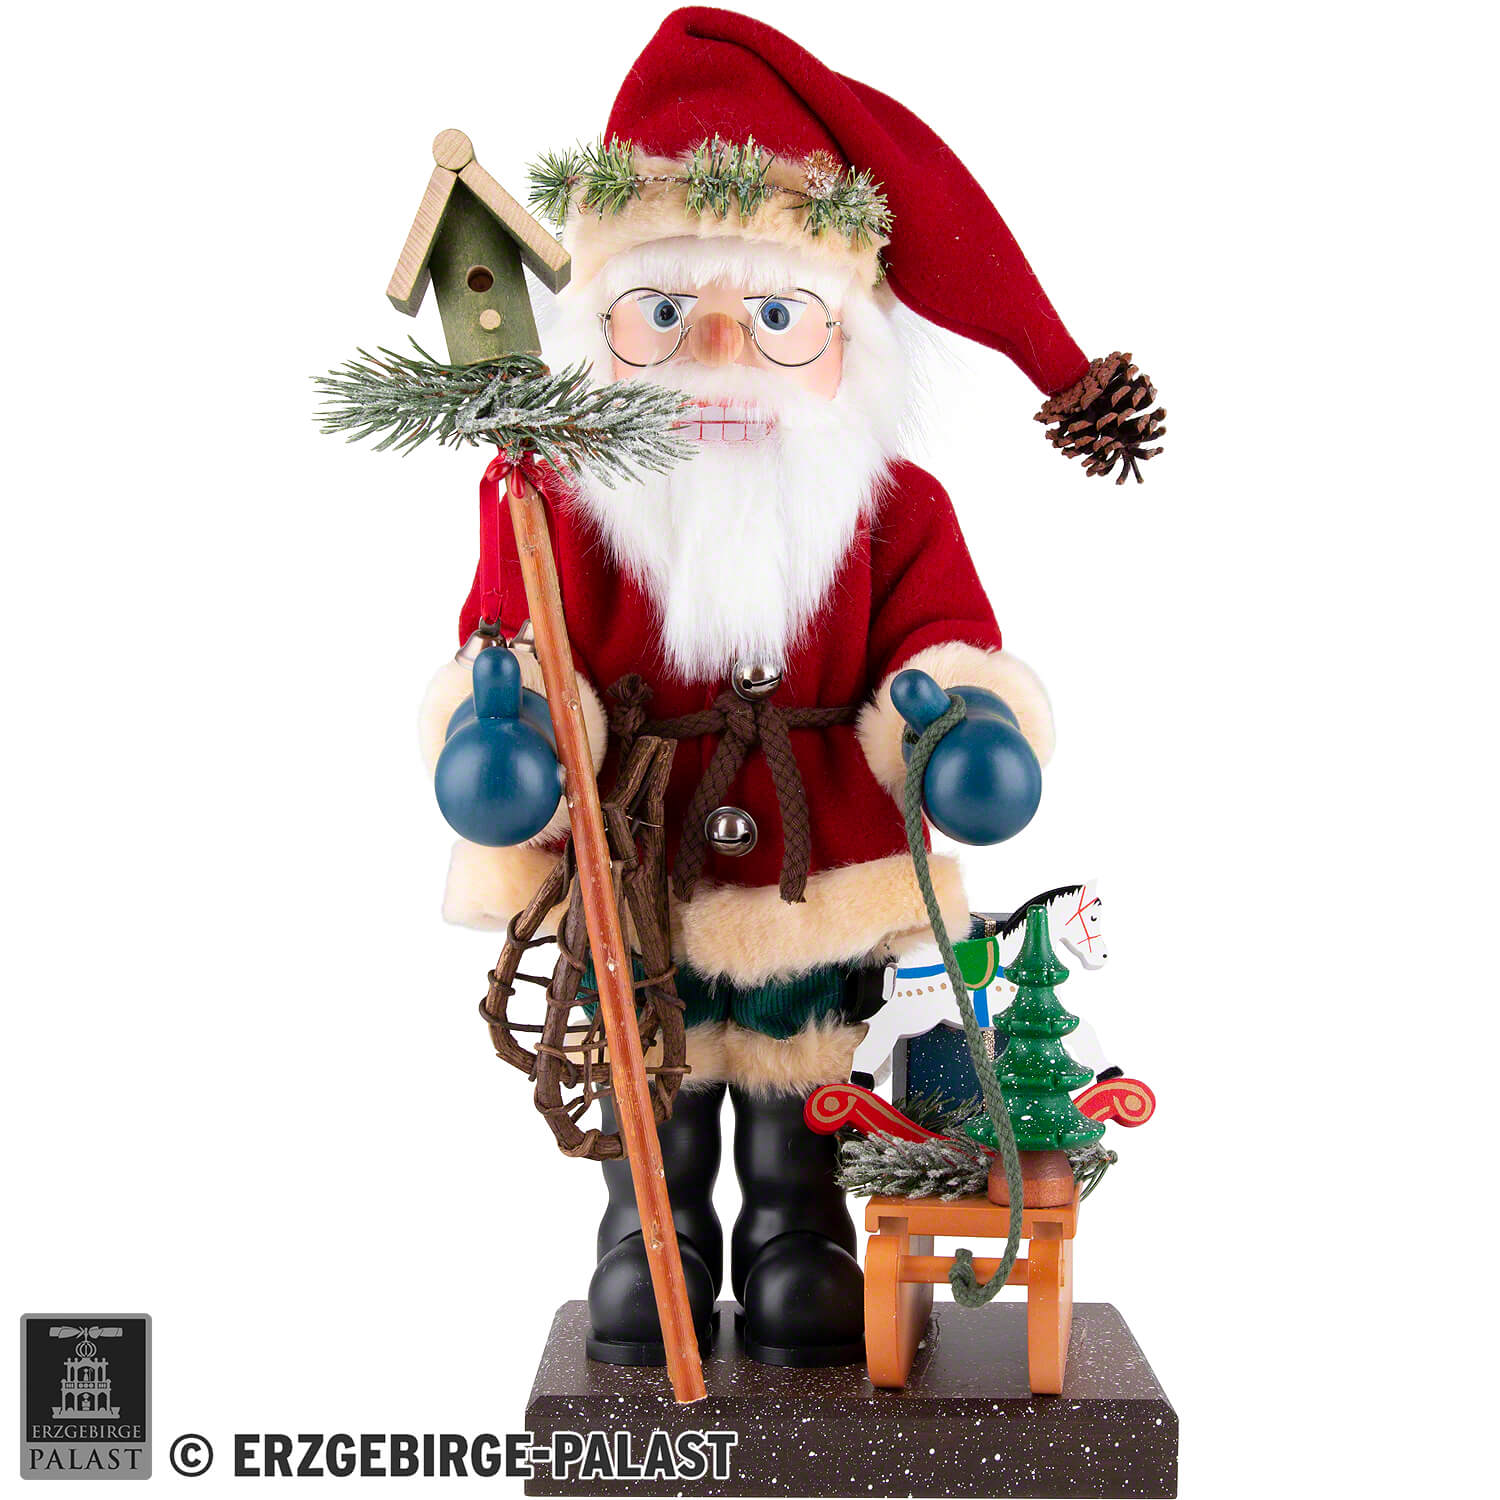 Nutcracker Santa Claus With Sled 47 Cm 18 5in By Christian Ulbricht